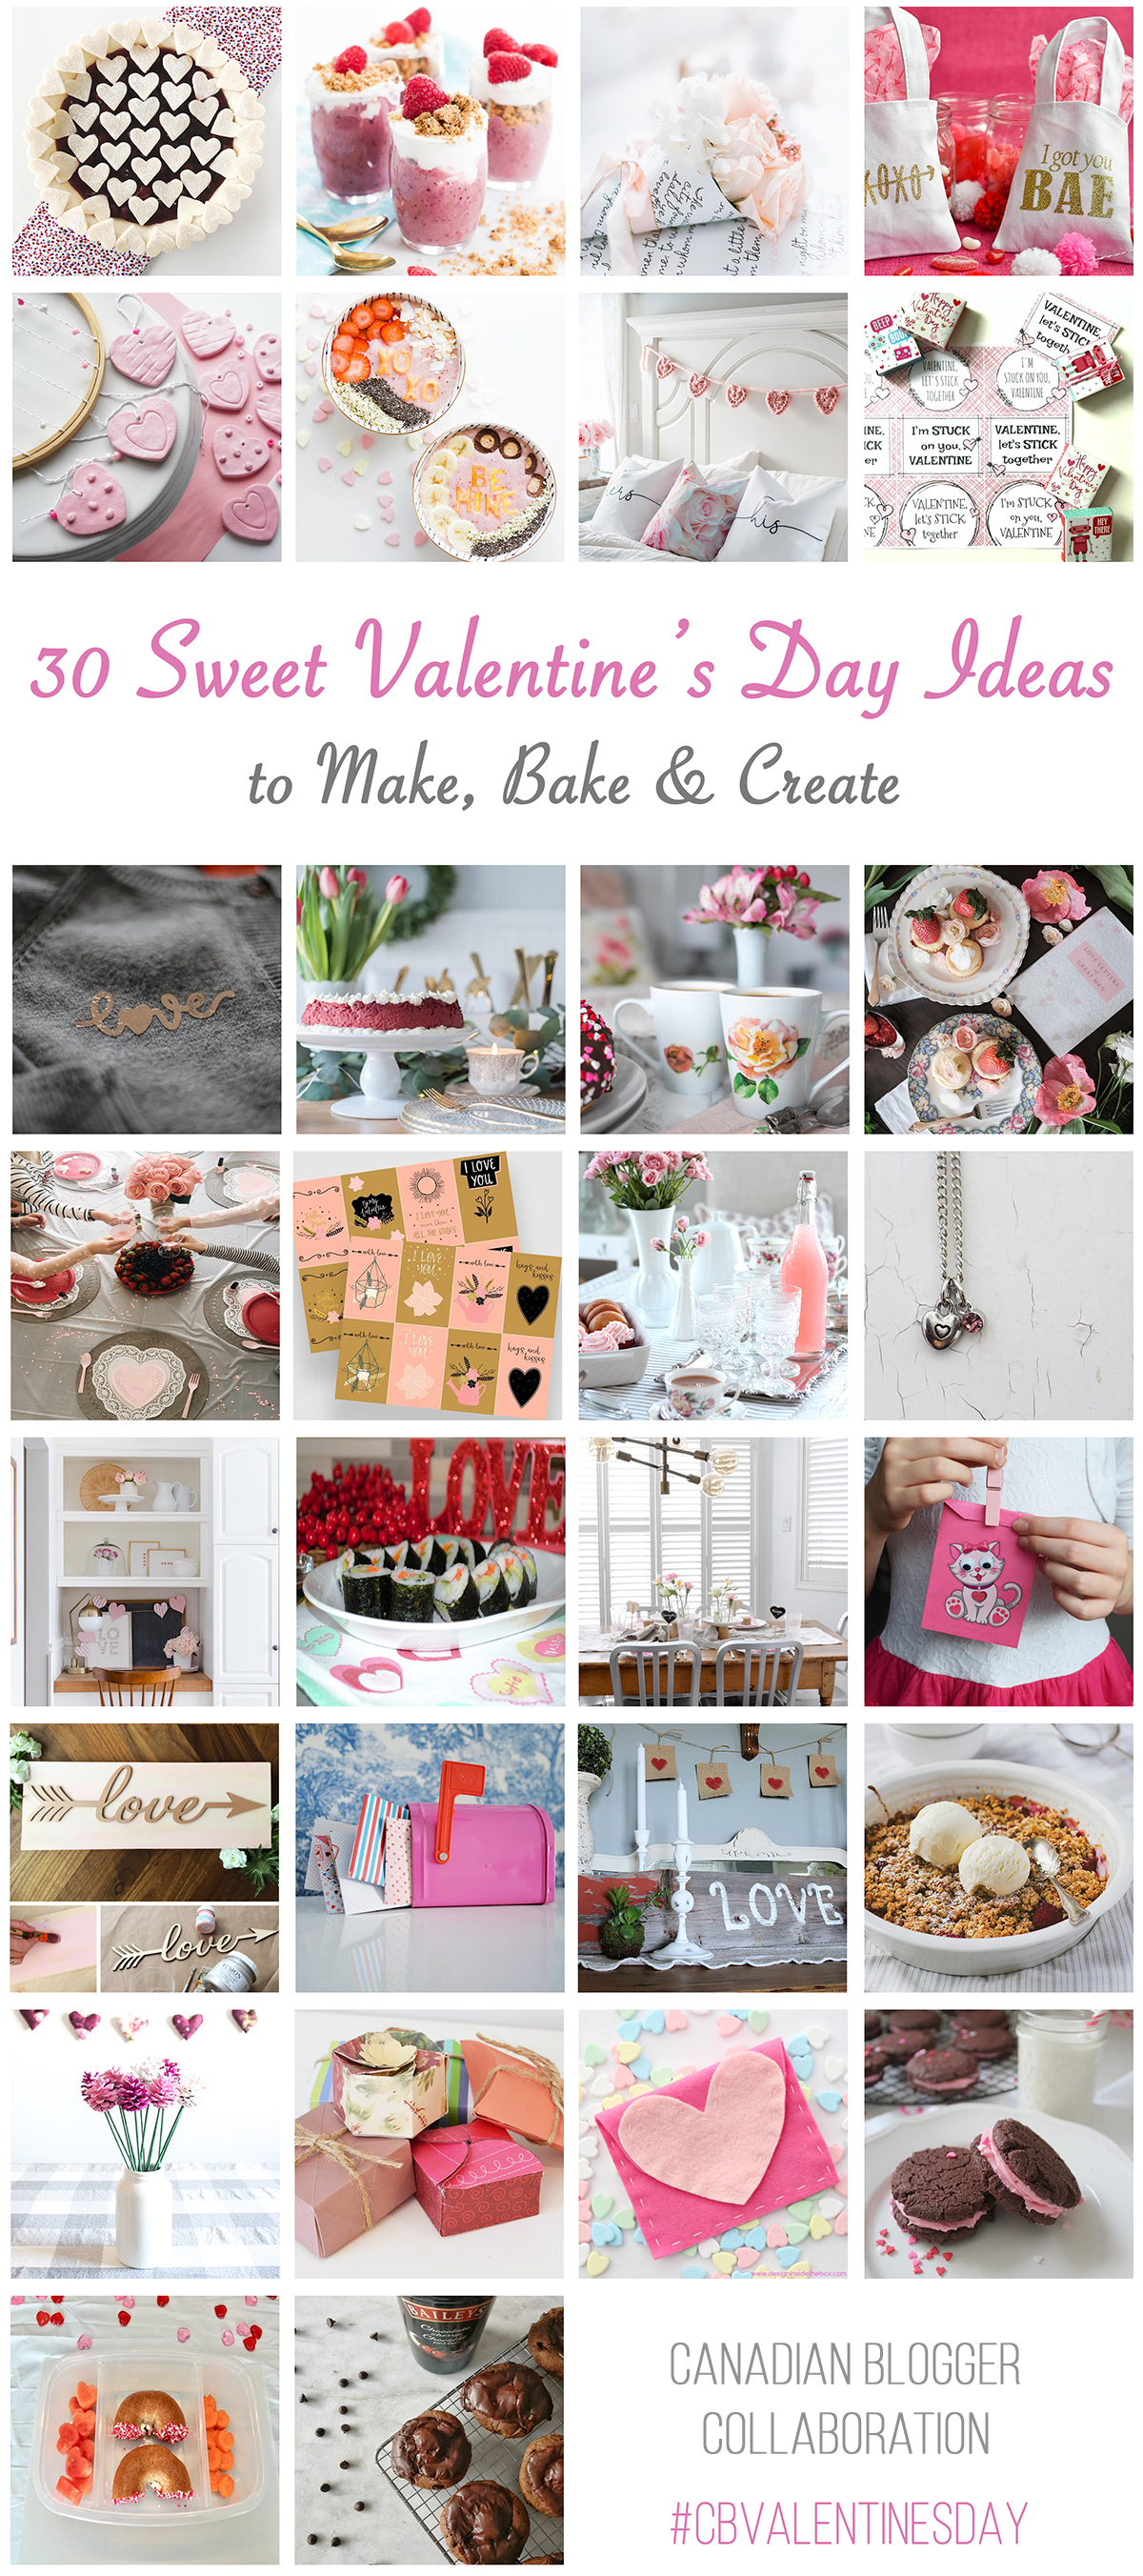 30-Valentine-27s-Day-Ideas-to-Make-2c-Bake-and-Create---2-